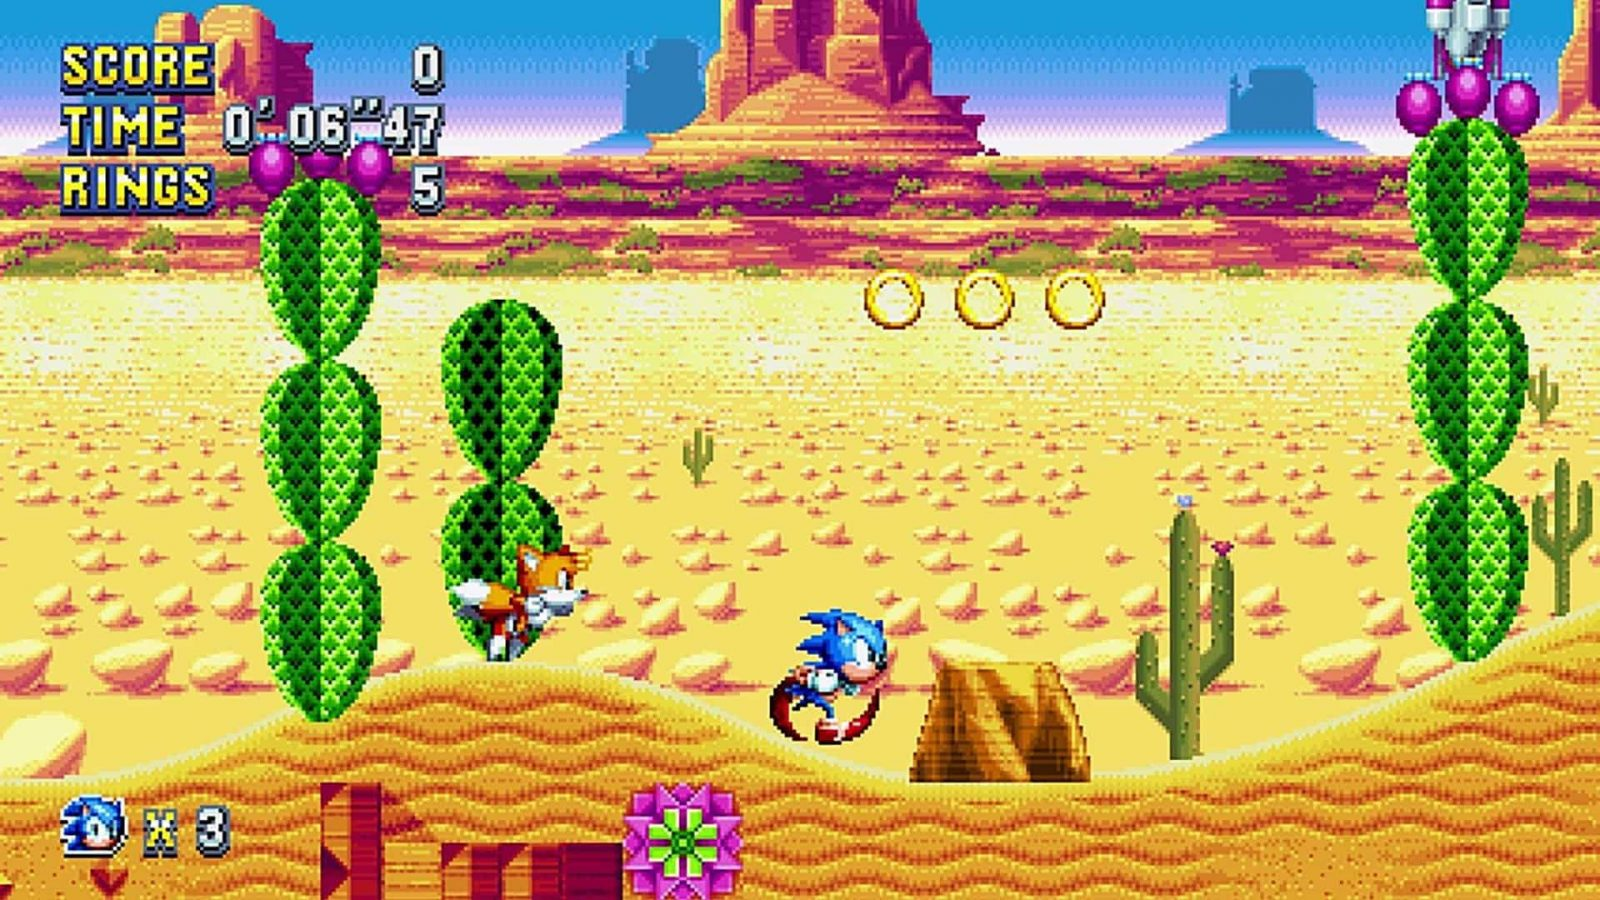 An image showing gameplay from sonic mania